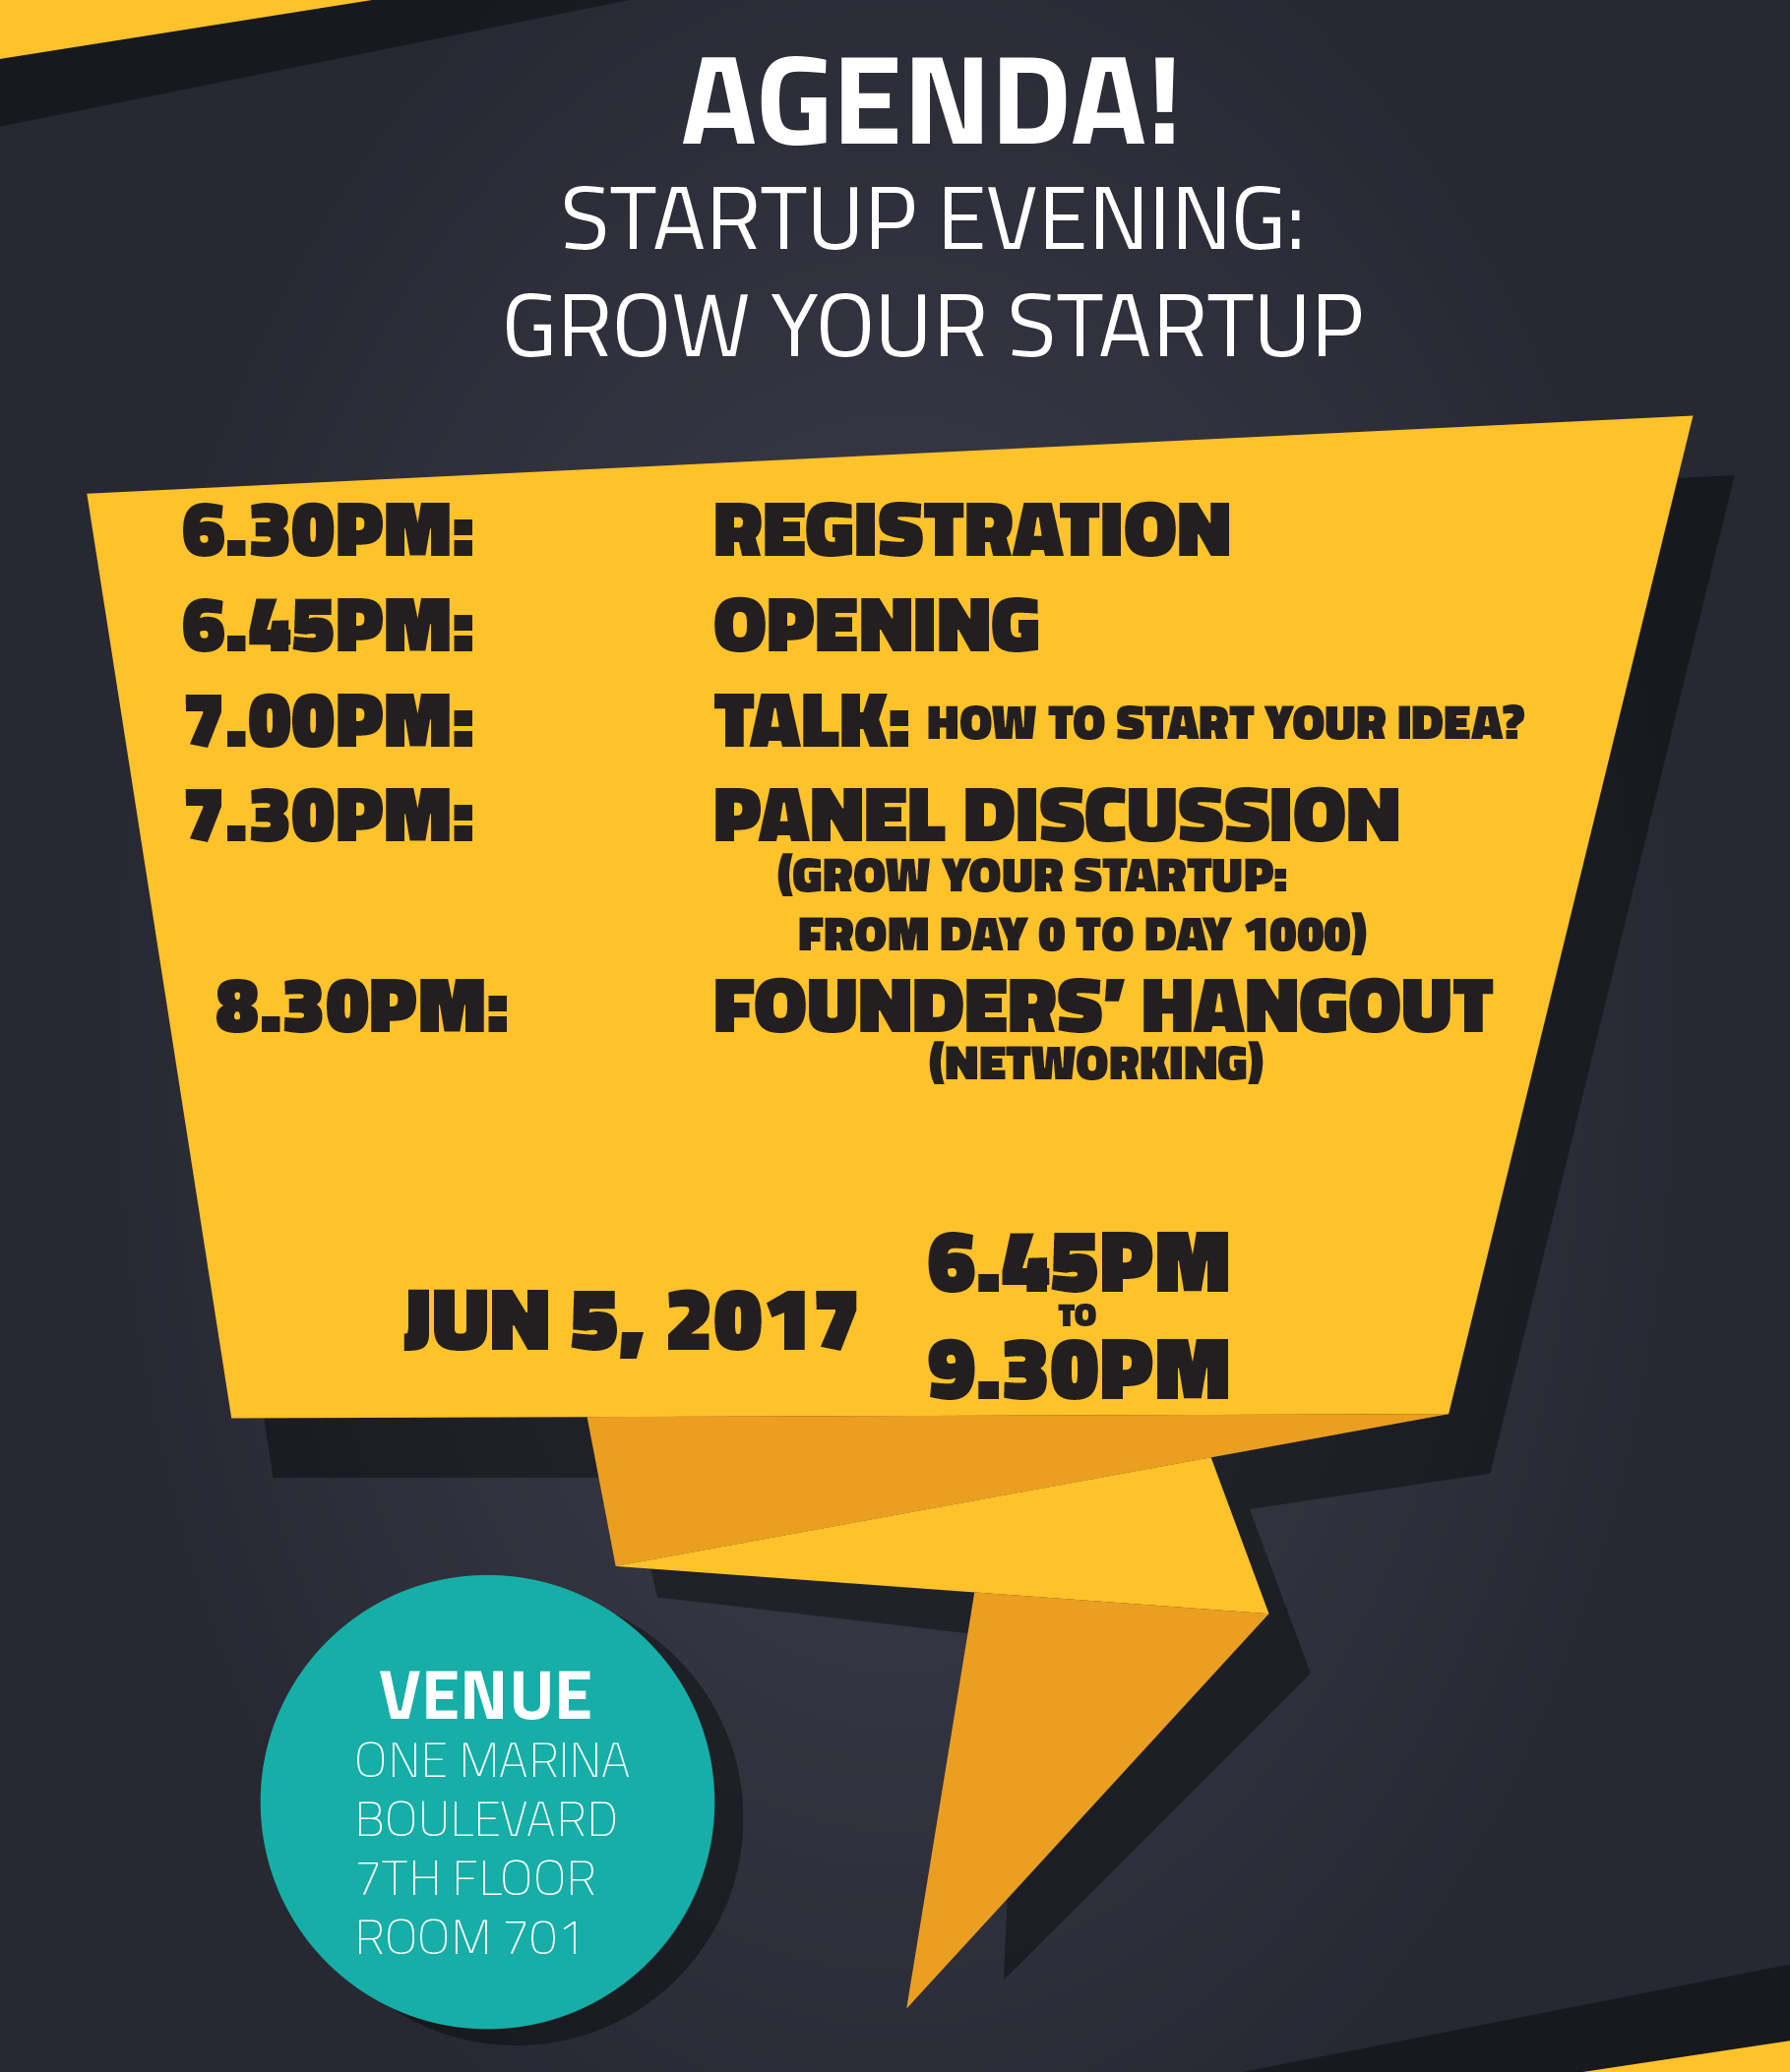 Grow Your Startup Agenda